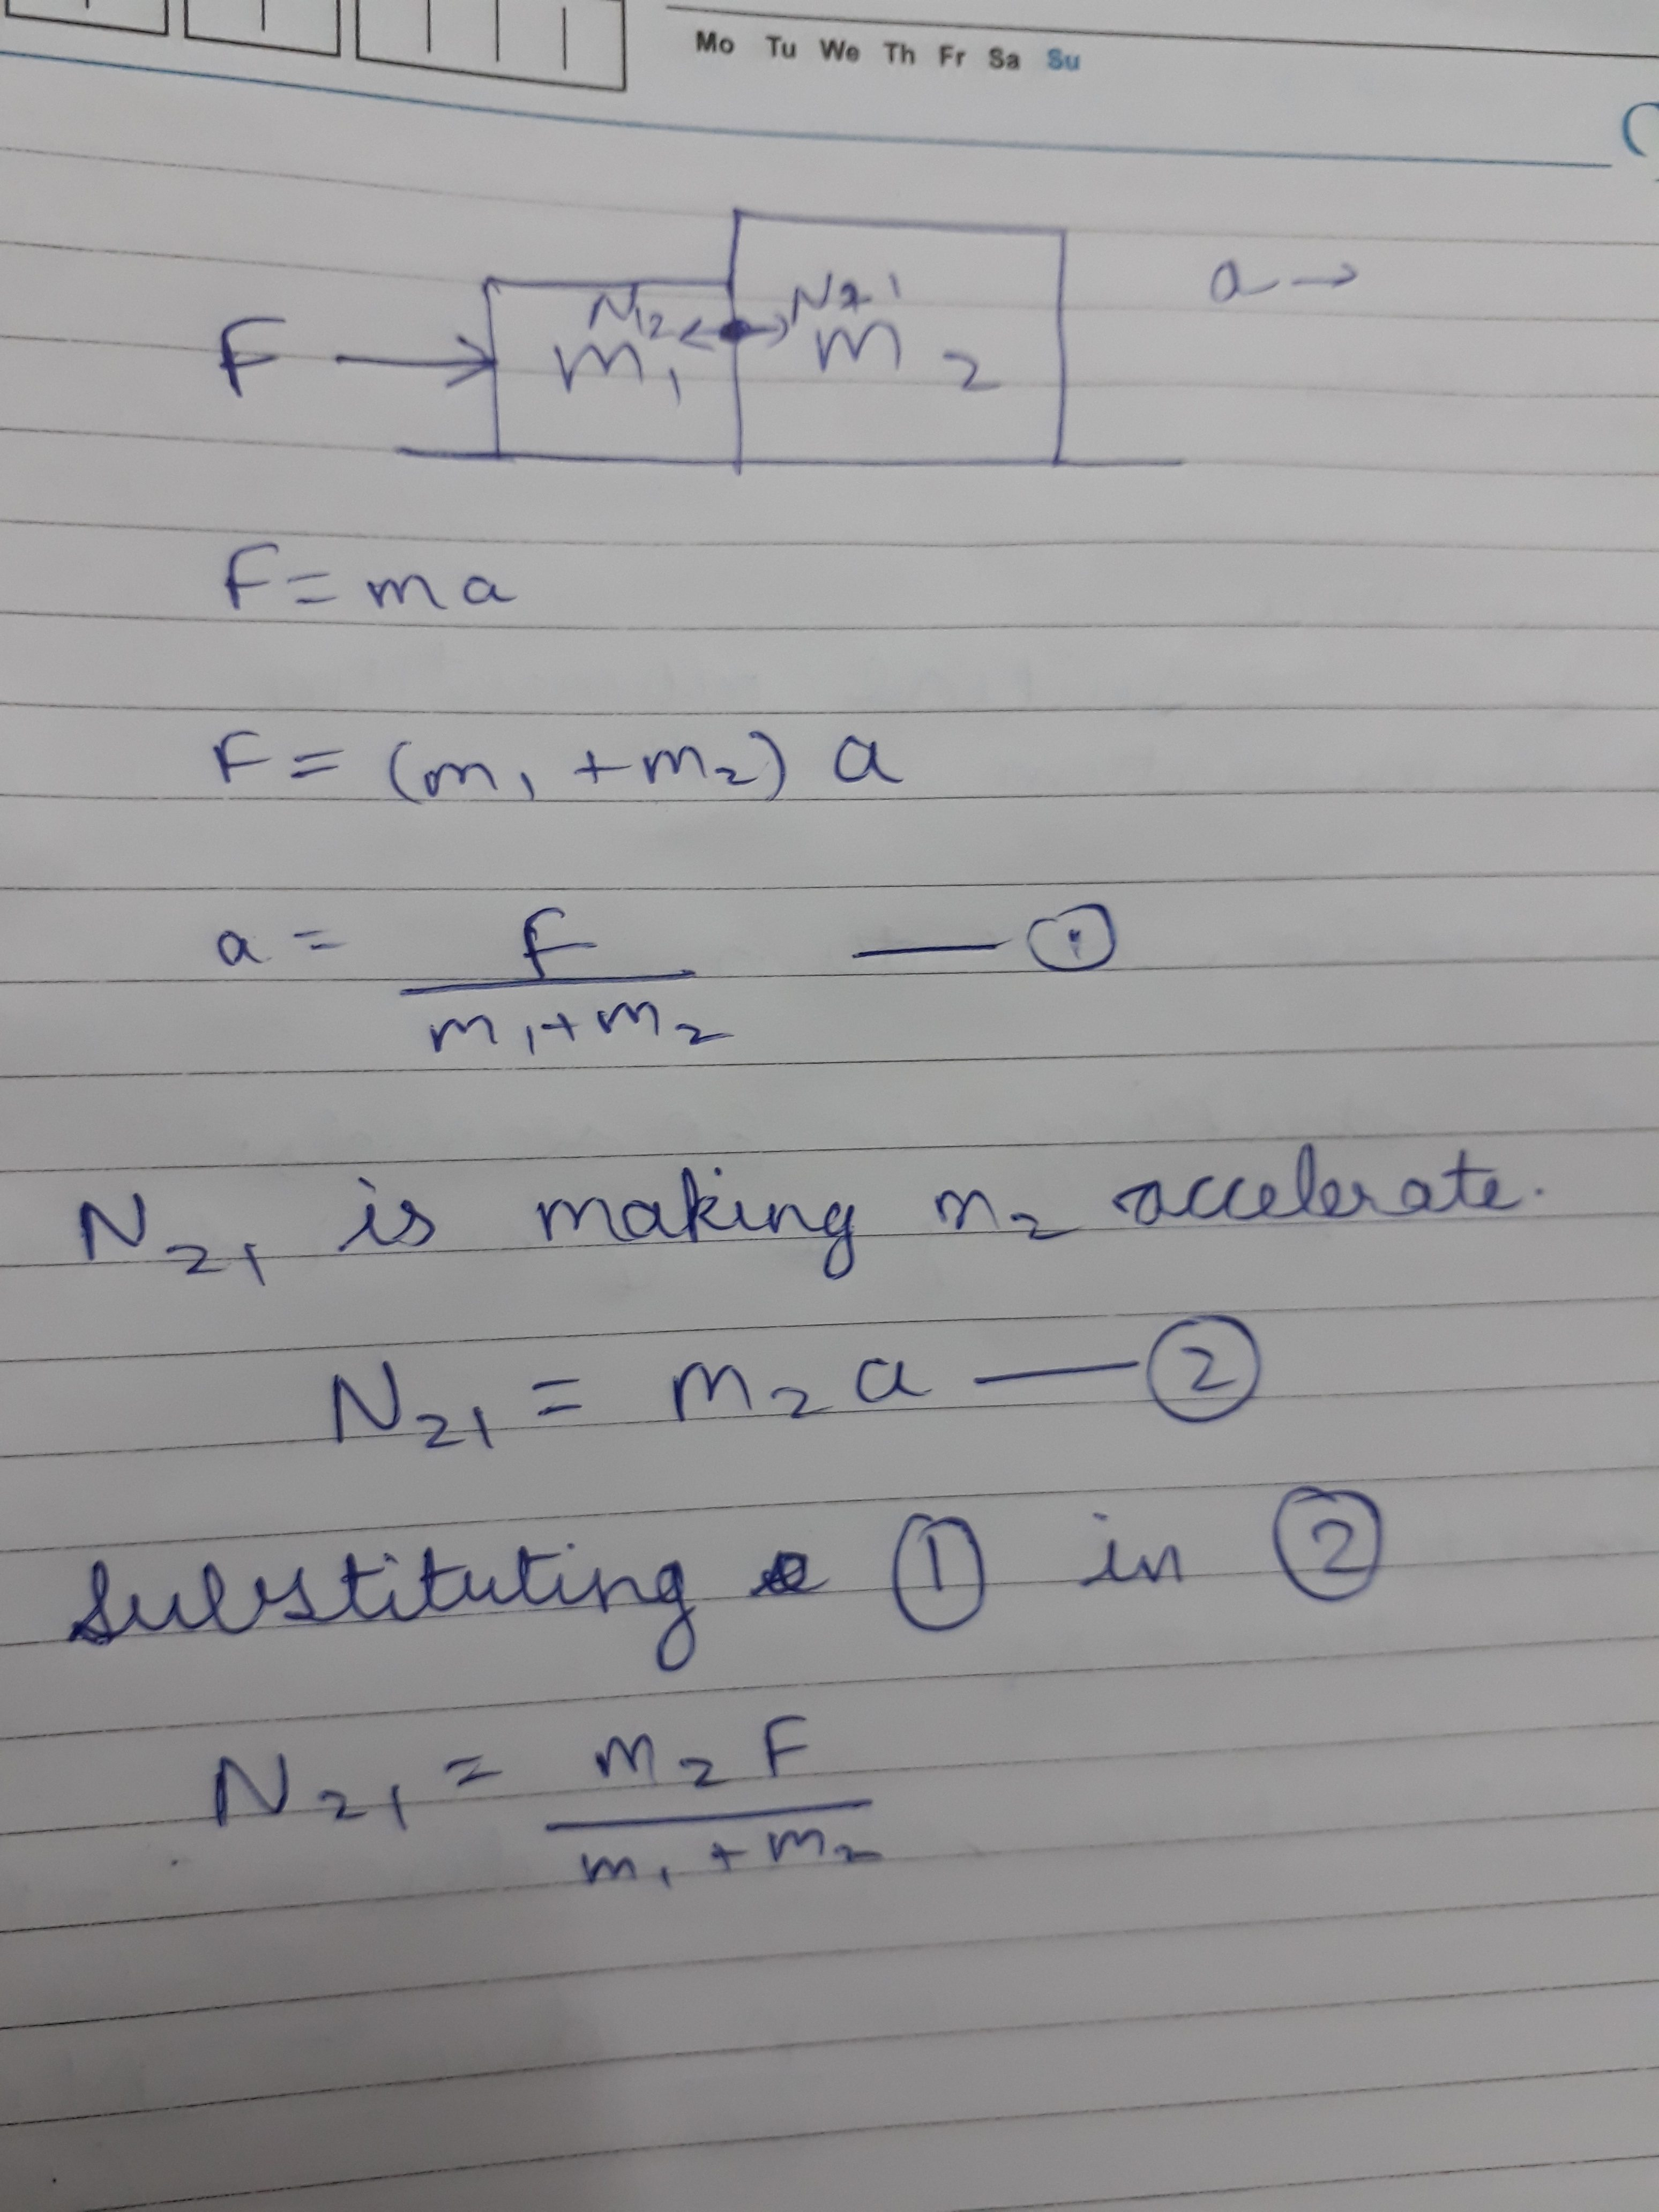 If Two Blocks Having Mass M1 And M2 Are Pushed With A Force F On Draw Freebody Diagrams For Each Of The Andthepulley 1k Views View 2 Upvoters Answer Requested By Abhijeet Kumar